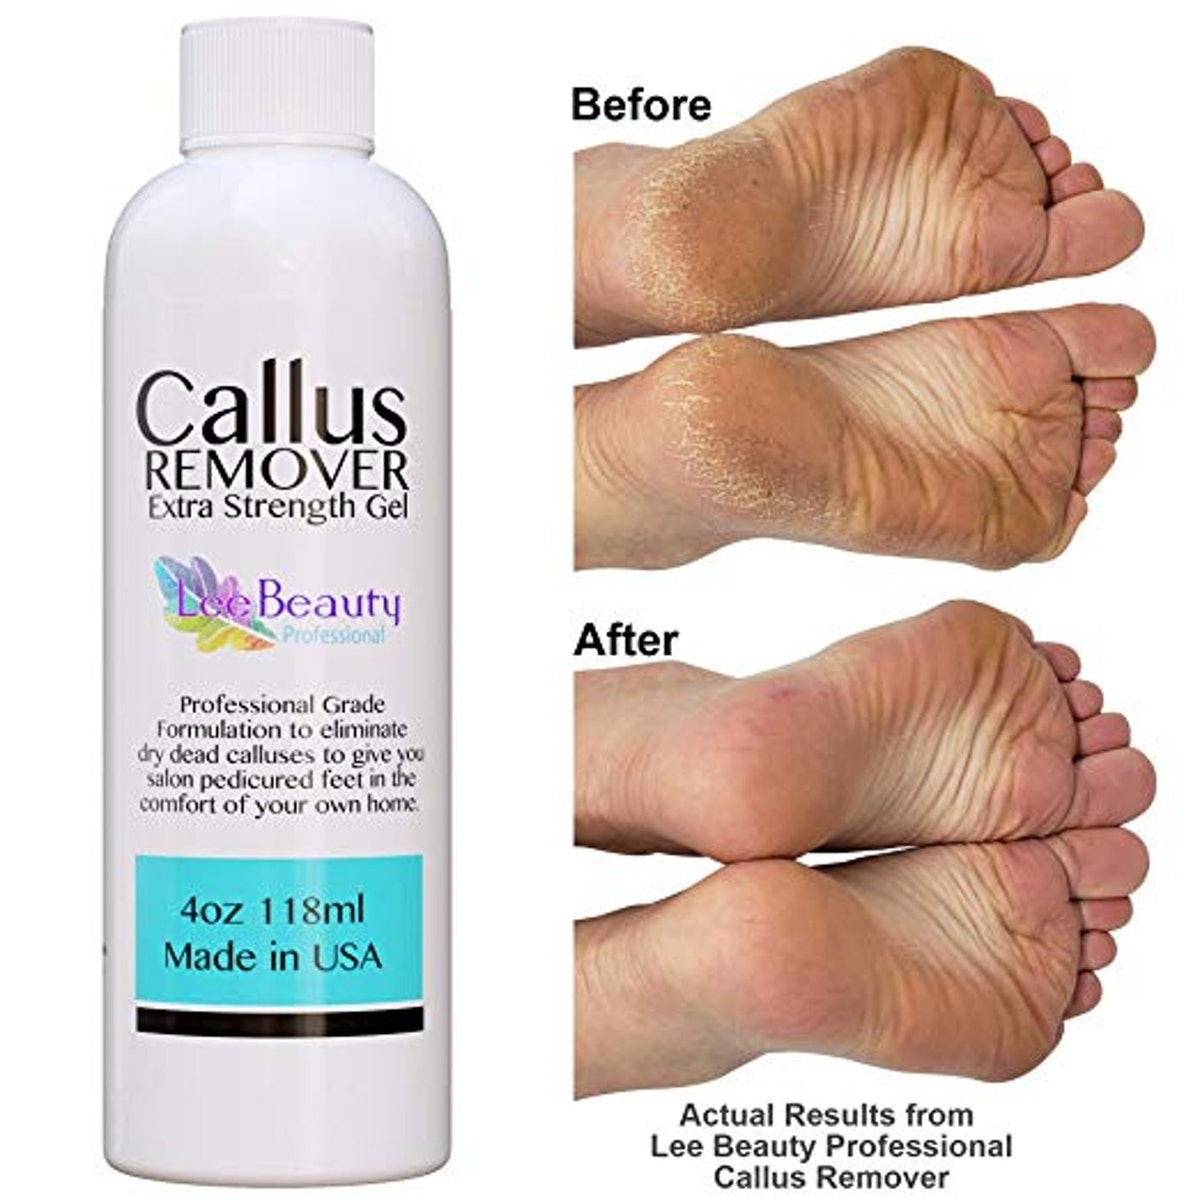 Lee Beauty Professional Callus Remover gel for feet